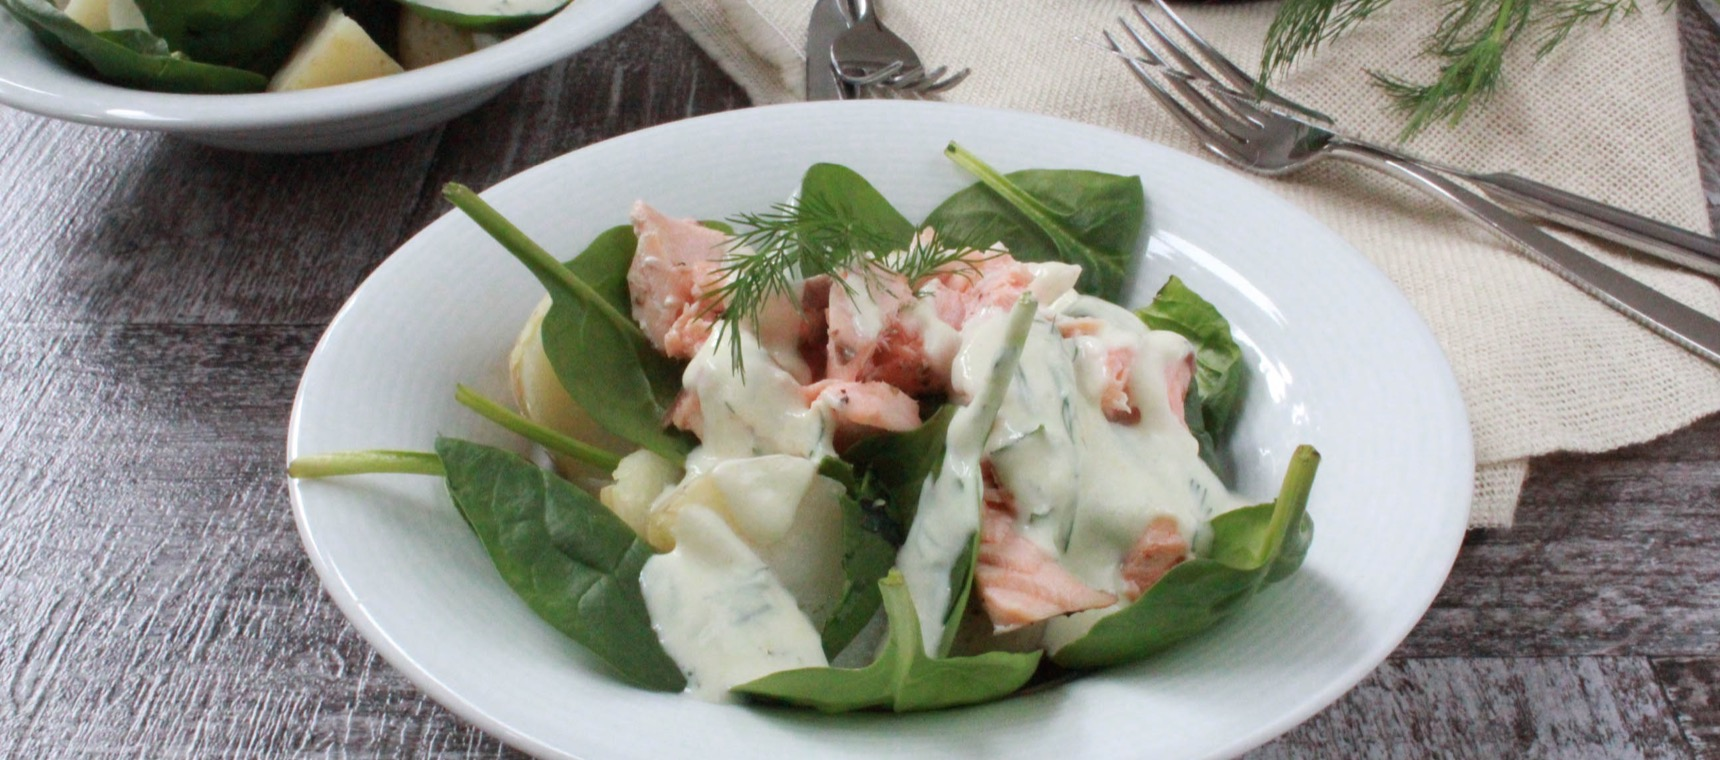 Warm Potato Salad with Salmon and Spinach